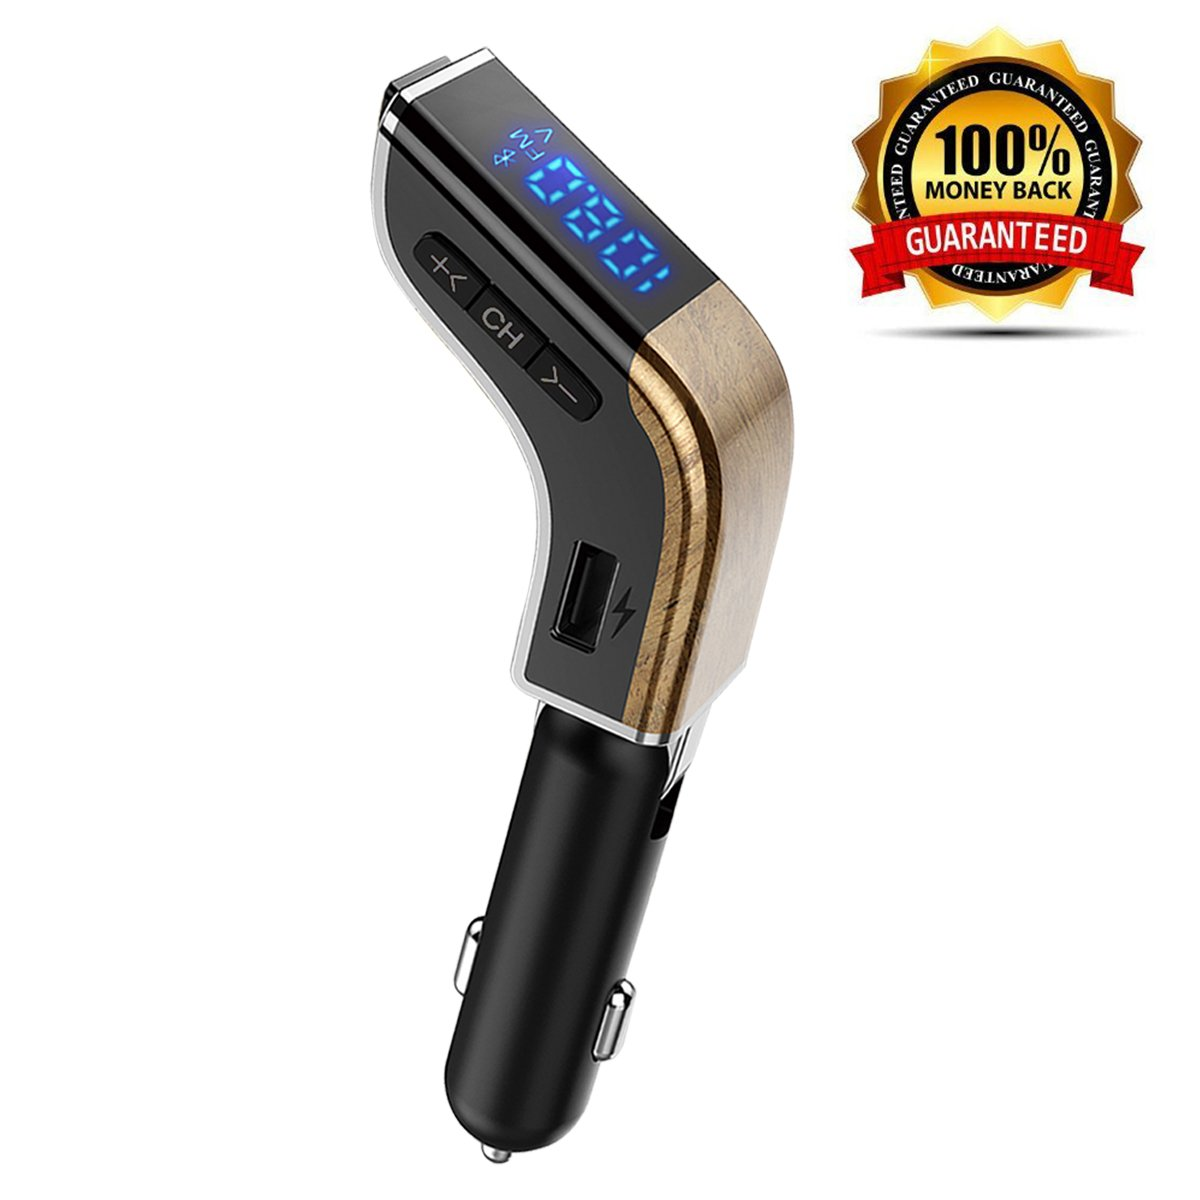 LUTU Mini Bluetooth FM Transmitter Car, Wireless in-Car Radio Adapter Car Kit Battery Voltage Display, Support Handsfree Calling 2 USB Charger 3.1A, TF Card Slot USB Driver (Grain)